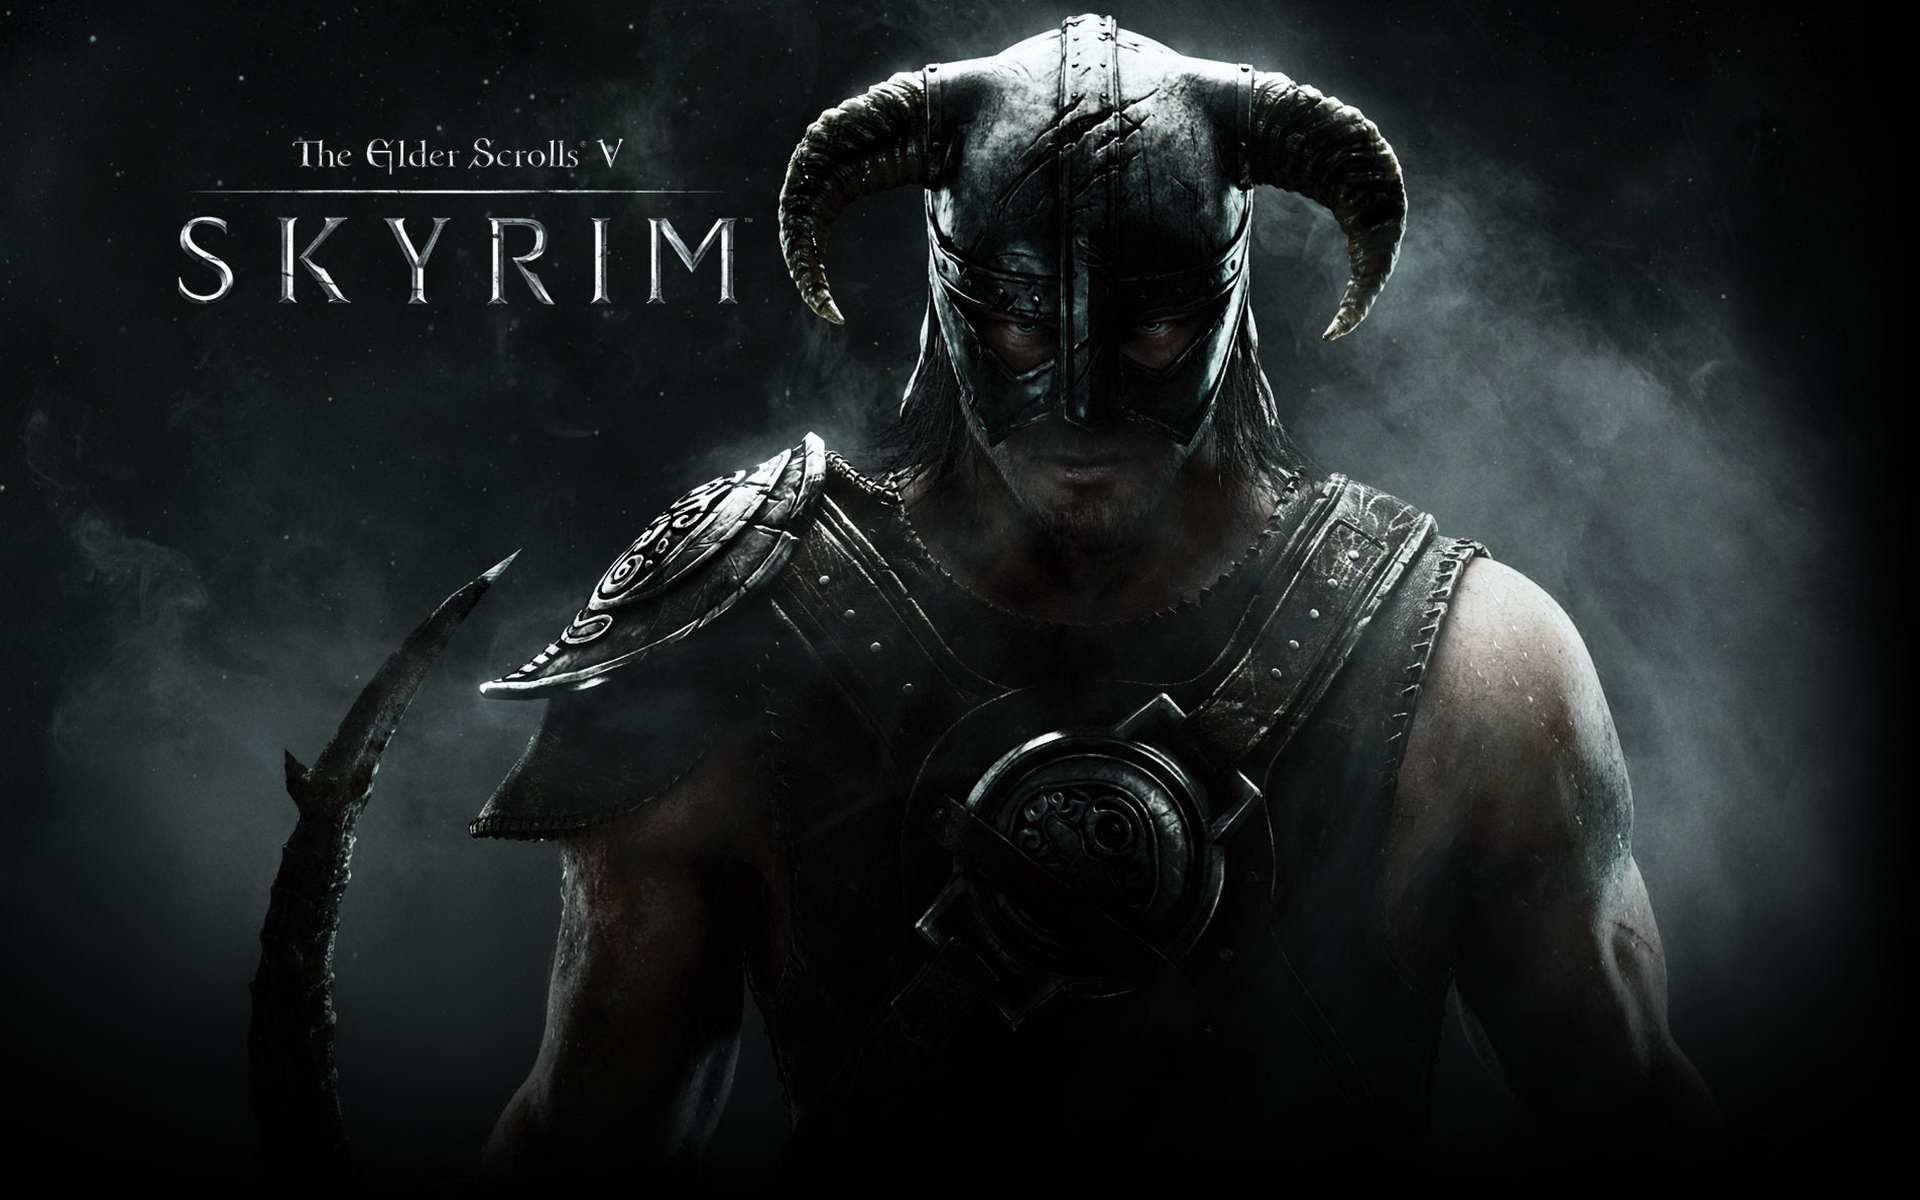 skyrim wallpapers photos and desktop backgrounds up to 8K